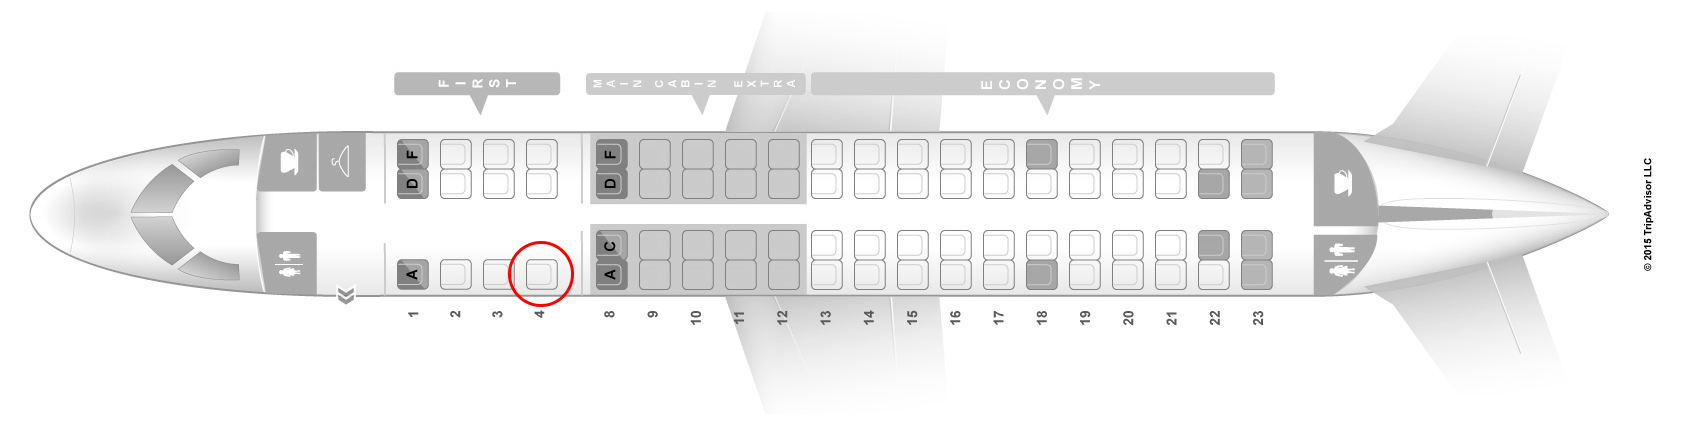 american eagle erj175 seat map